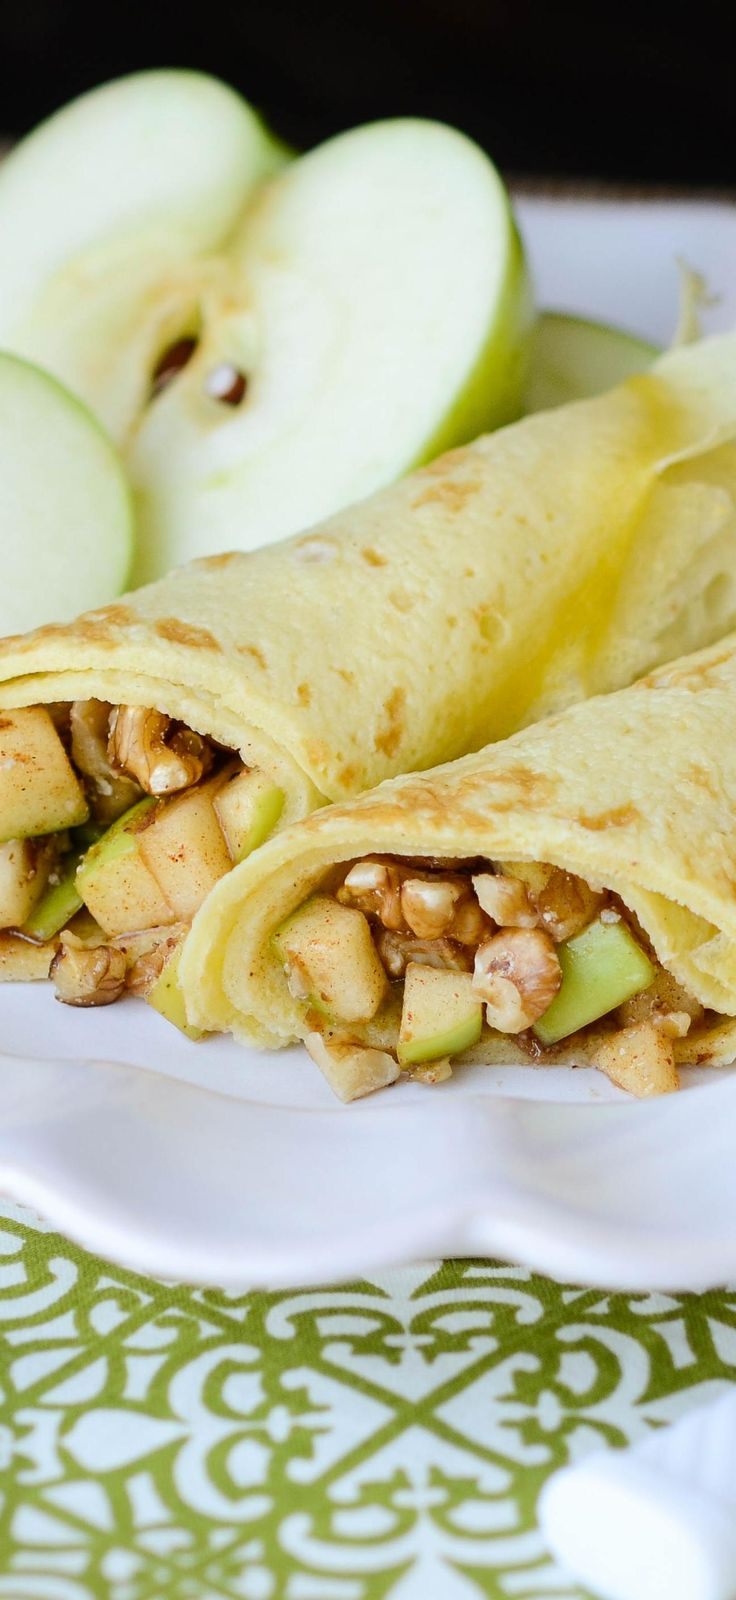 Better than apple pie for breakfast these Apple Pecan Crepes take tart granny smith apples sautéed in brown sugar and wrap them up in a delicate golden crepe for a sweet and zippy way to greet the morning.